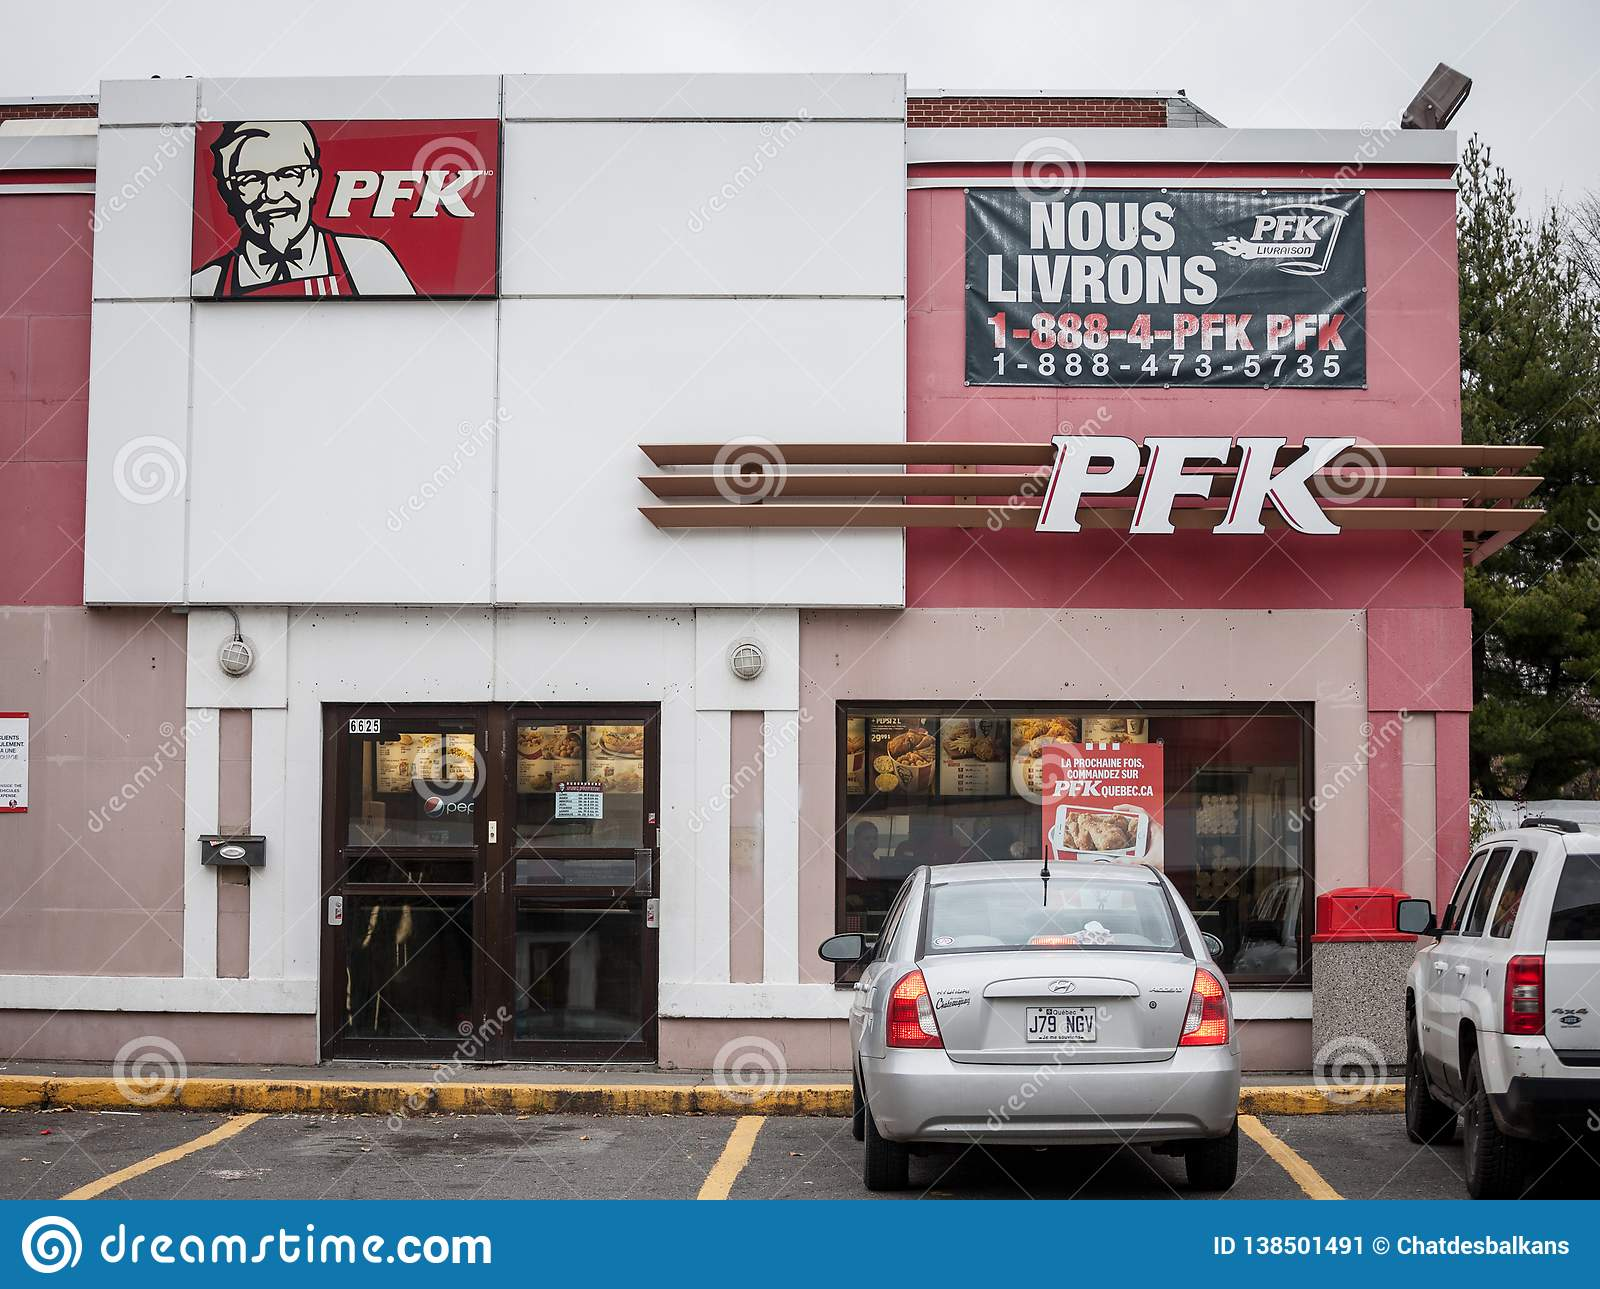 Pfk logo on a local restaurant in montreal poulet frit - Kentucky french chicken ...